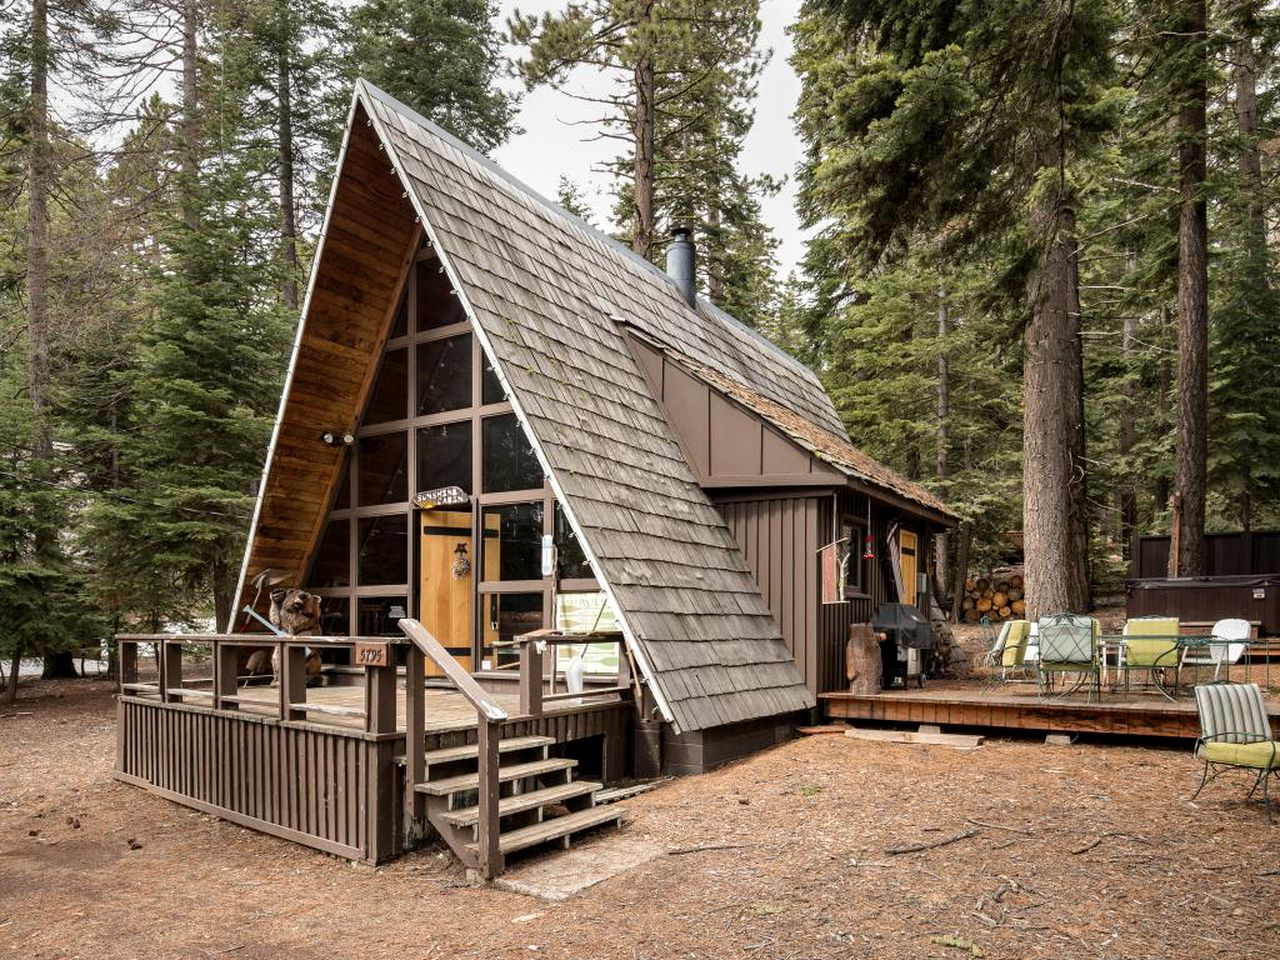 A-frame cabin in California and Lake Tahoe vacation rental surrounded by trees.